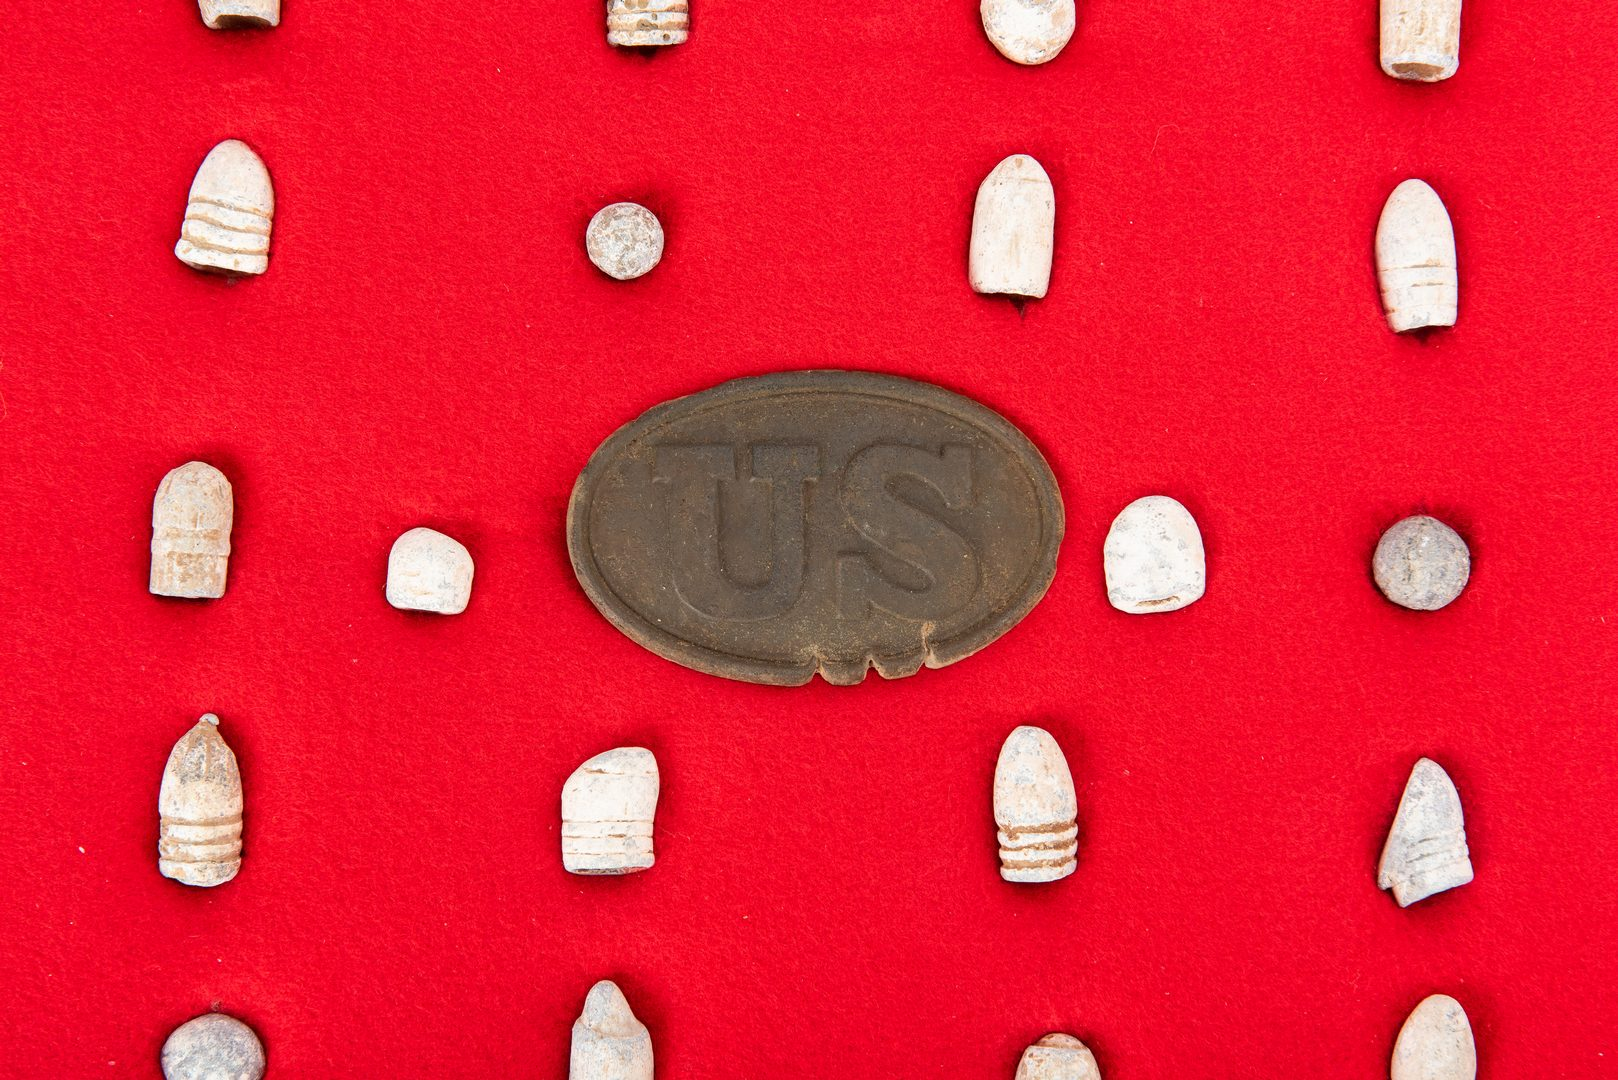 Lot 394: 35 Civil War era Relics, inc. US Belt Buckle